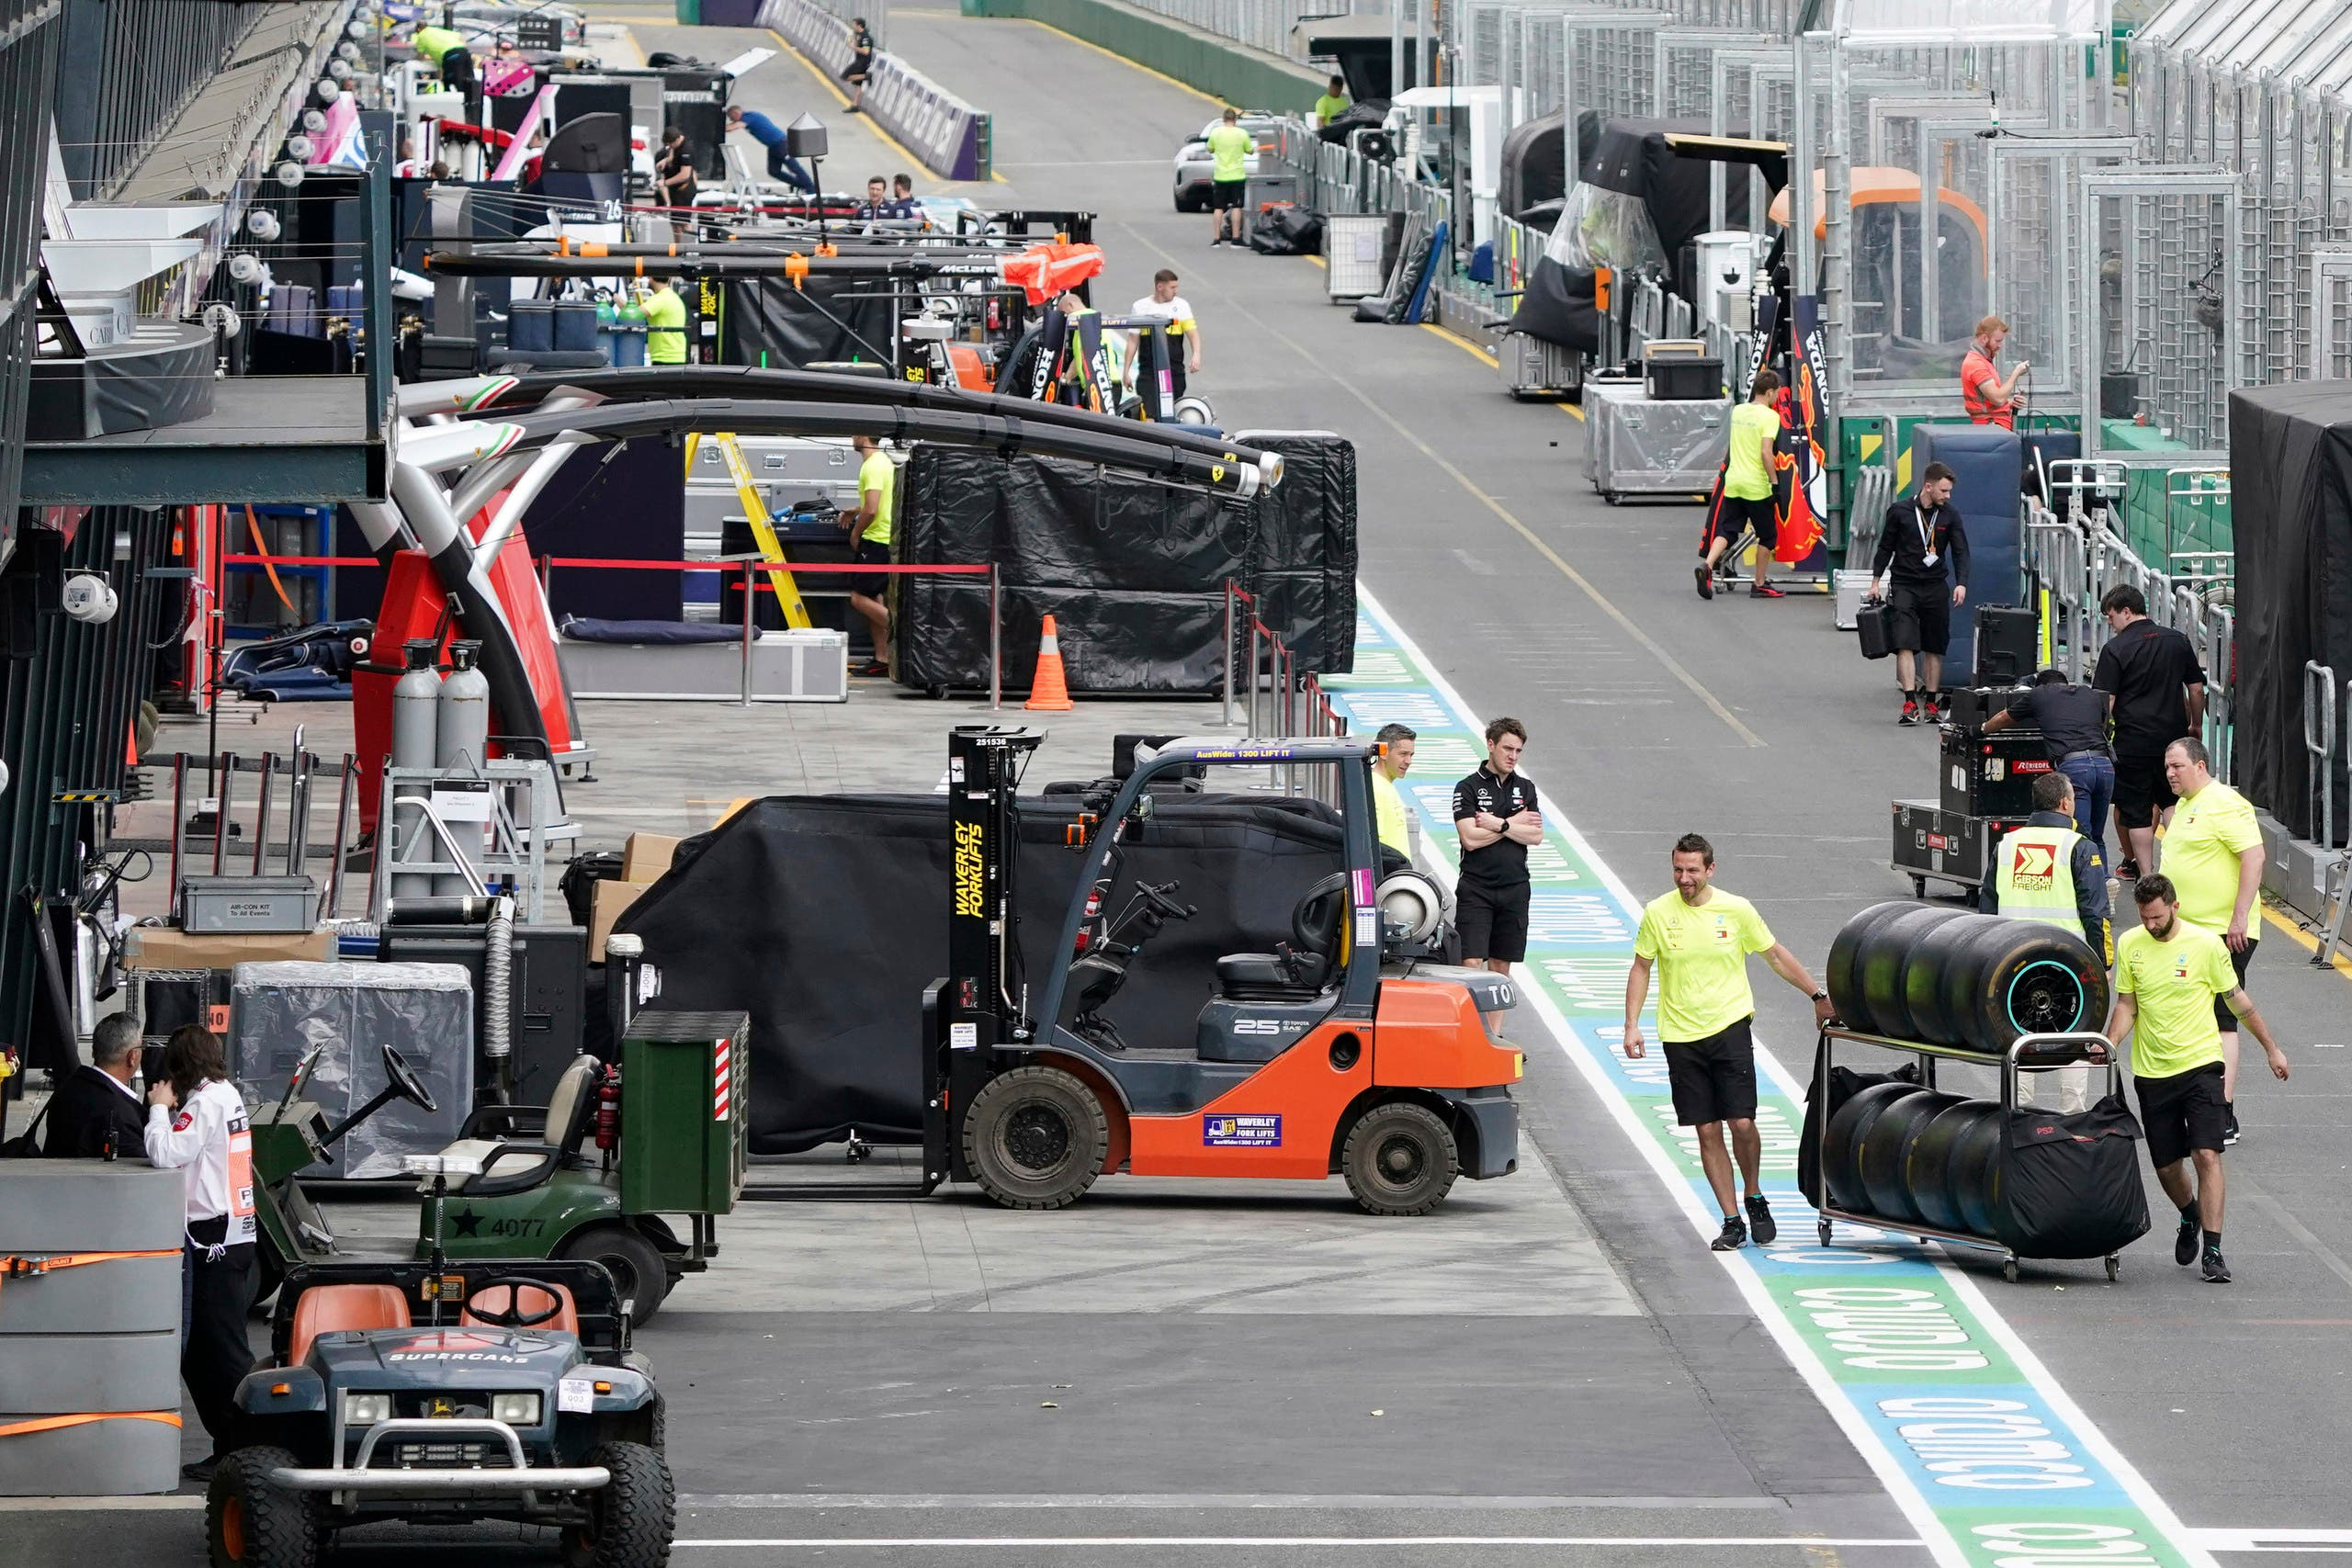 Workers pack up in pit lane after the cancellation of the Australian Formula One Grand Prix in Melbourne, Friday, March 13, 2020.